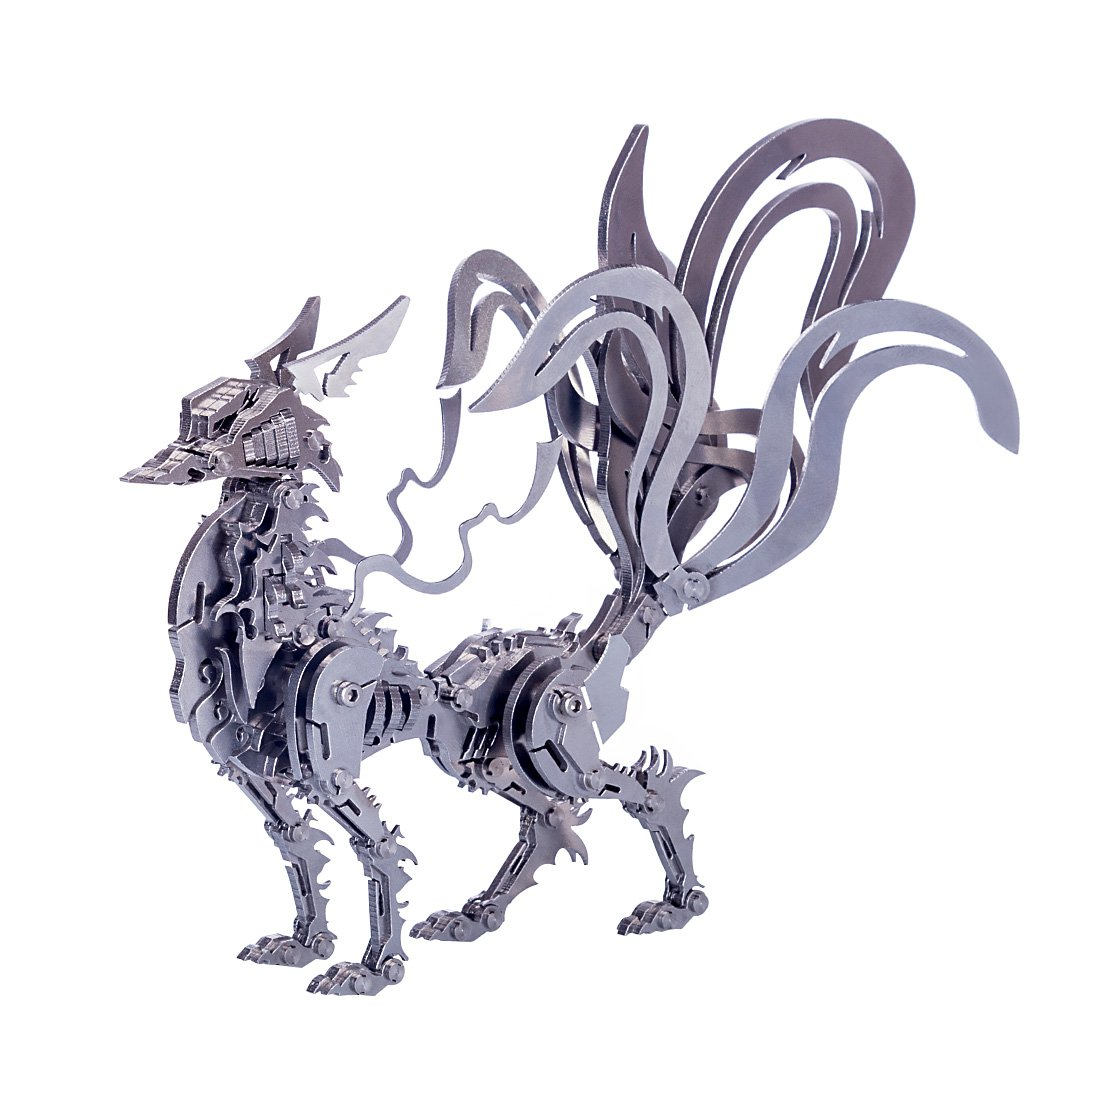 3D DIY Metal Puzzle Big Nine-tailed Fox Model Kit-Difficulty level: ⭐⭐⭐⭐⭐⭐